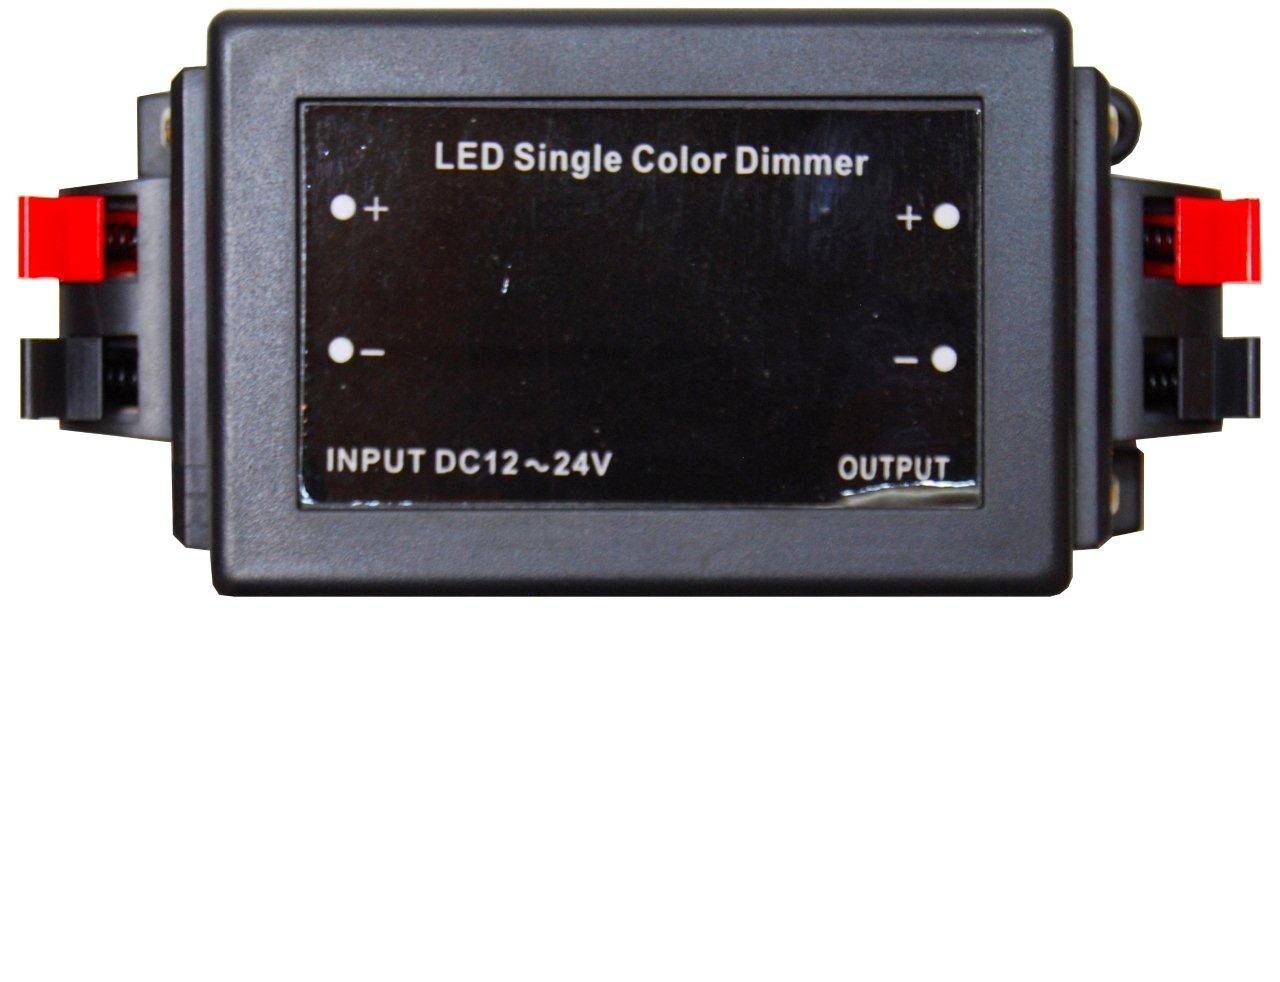 ITLEDLEDSingleColorDimmer (no remote shown)